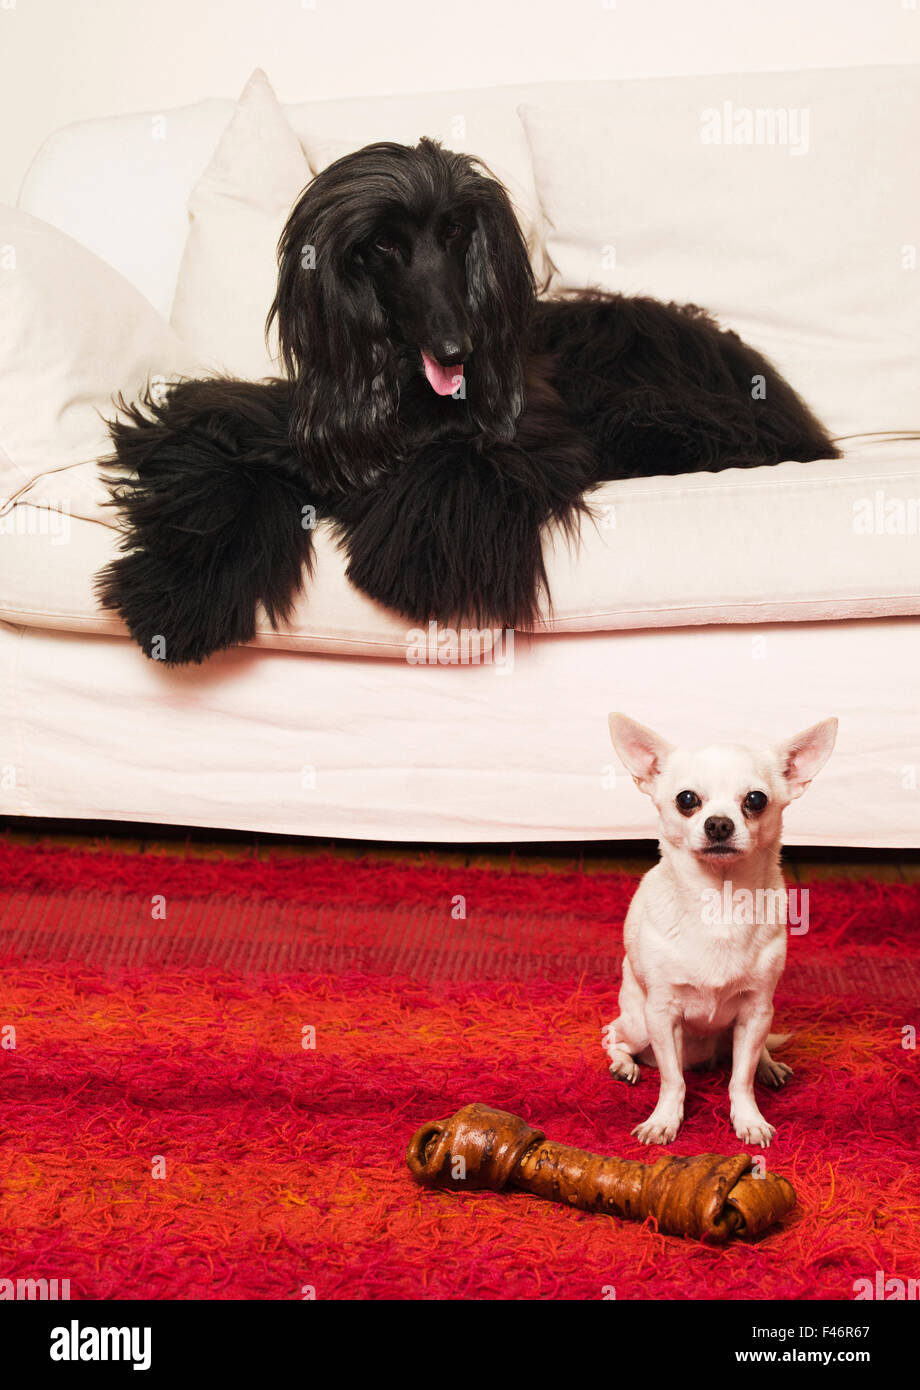 Two dogs and a dogbone. - Stock Image